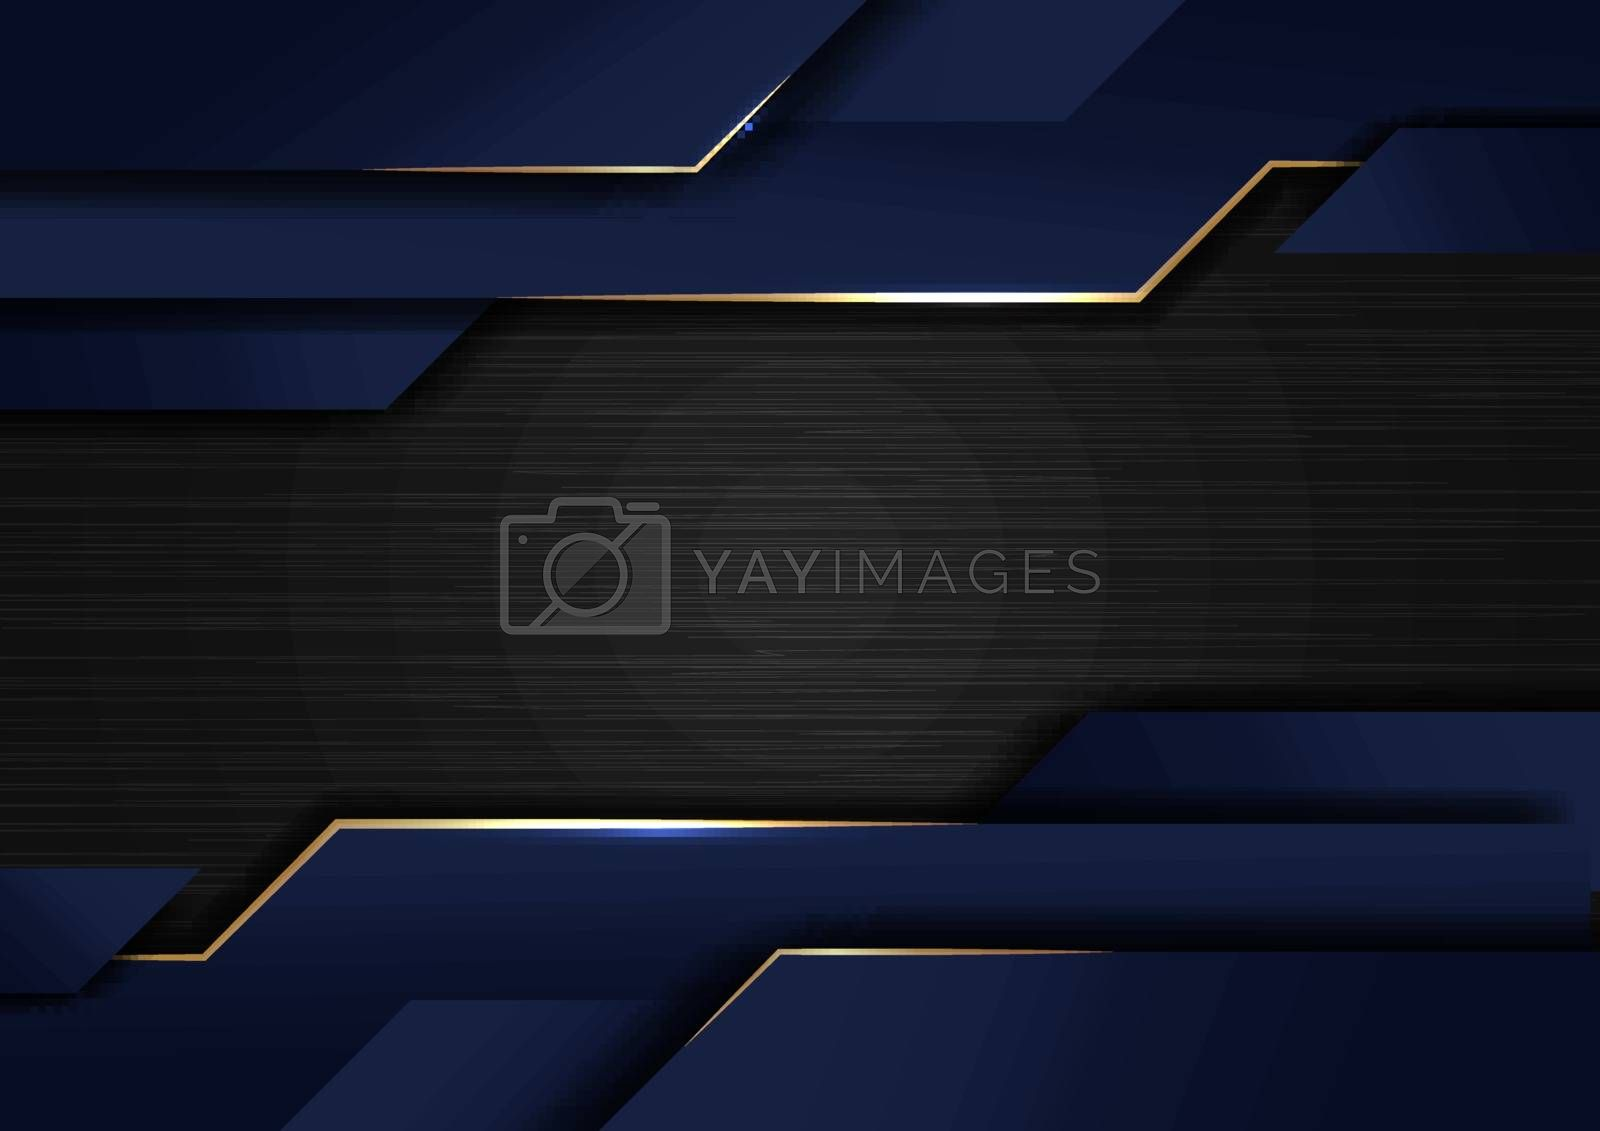 Abstract technology geometric glowing gold and blue color shiny motion dark metallic background. Template with header and footers for brochure, print, ad, magazine, poster, website, magazine, leaflet, annual report. Vector corporate